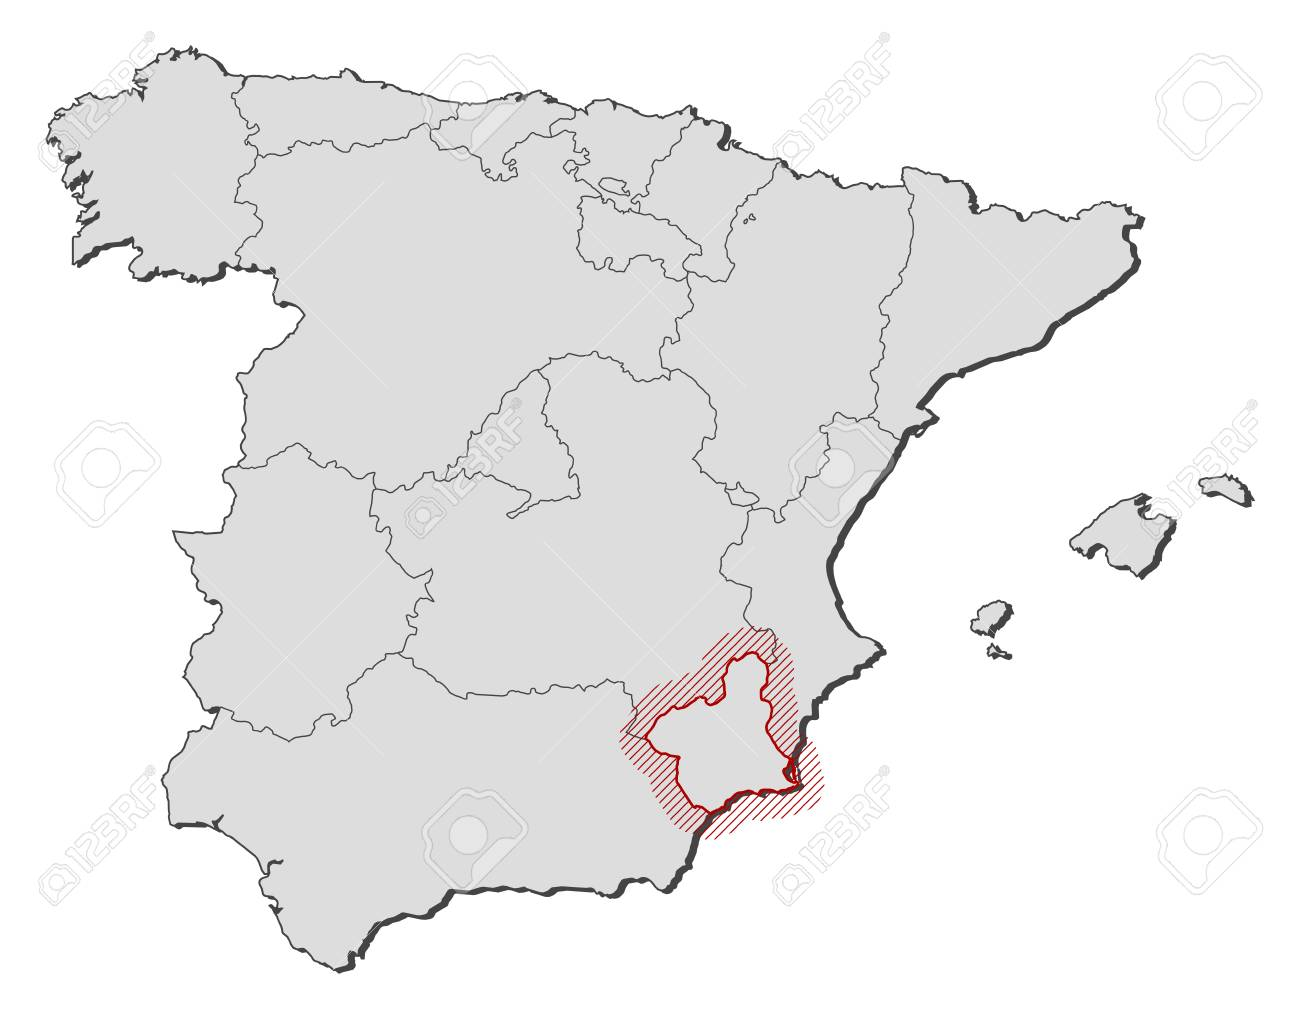 Murcia Map Of Spain.Map Of Spain With The Provinces Murcia Is Highlighted By A Hatching